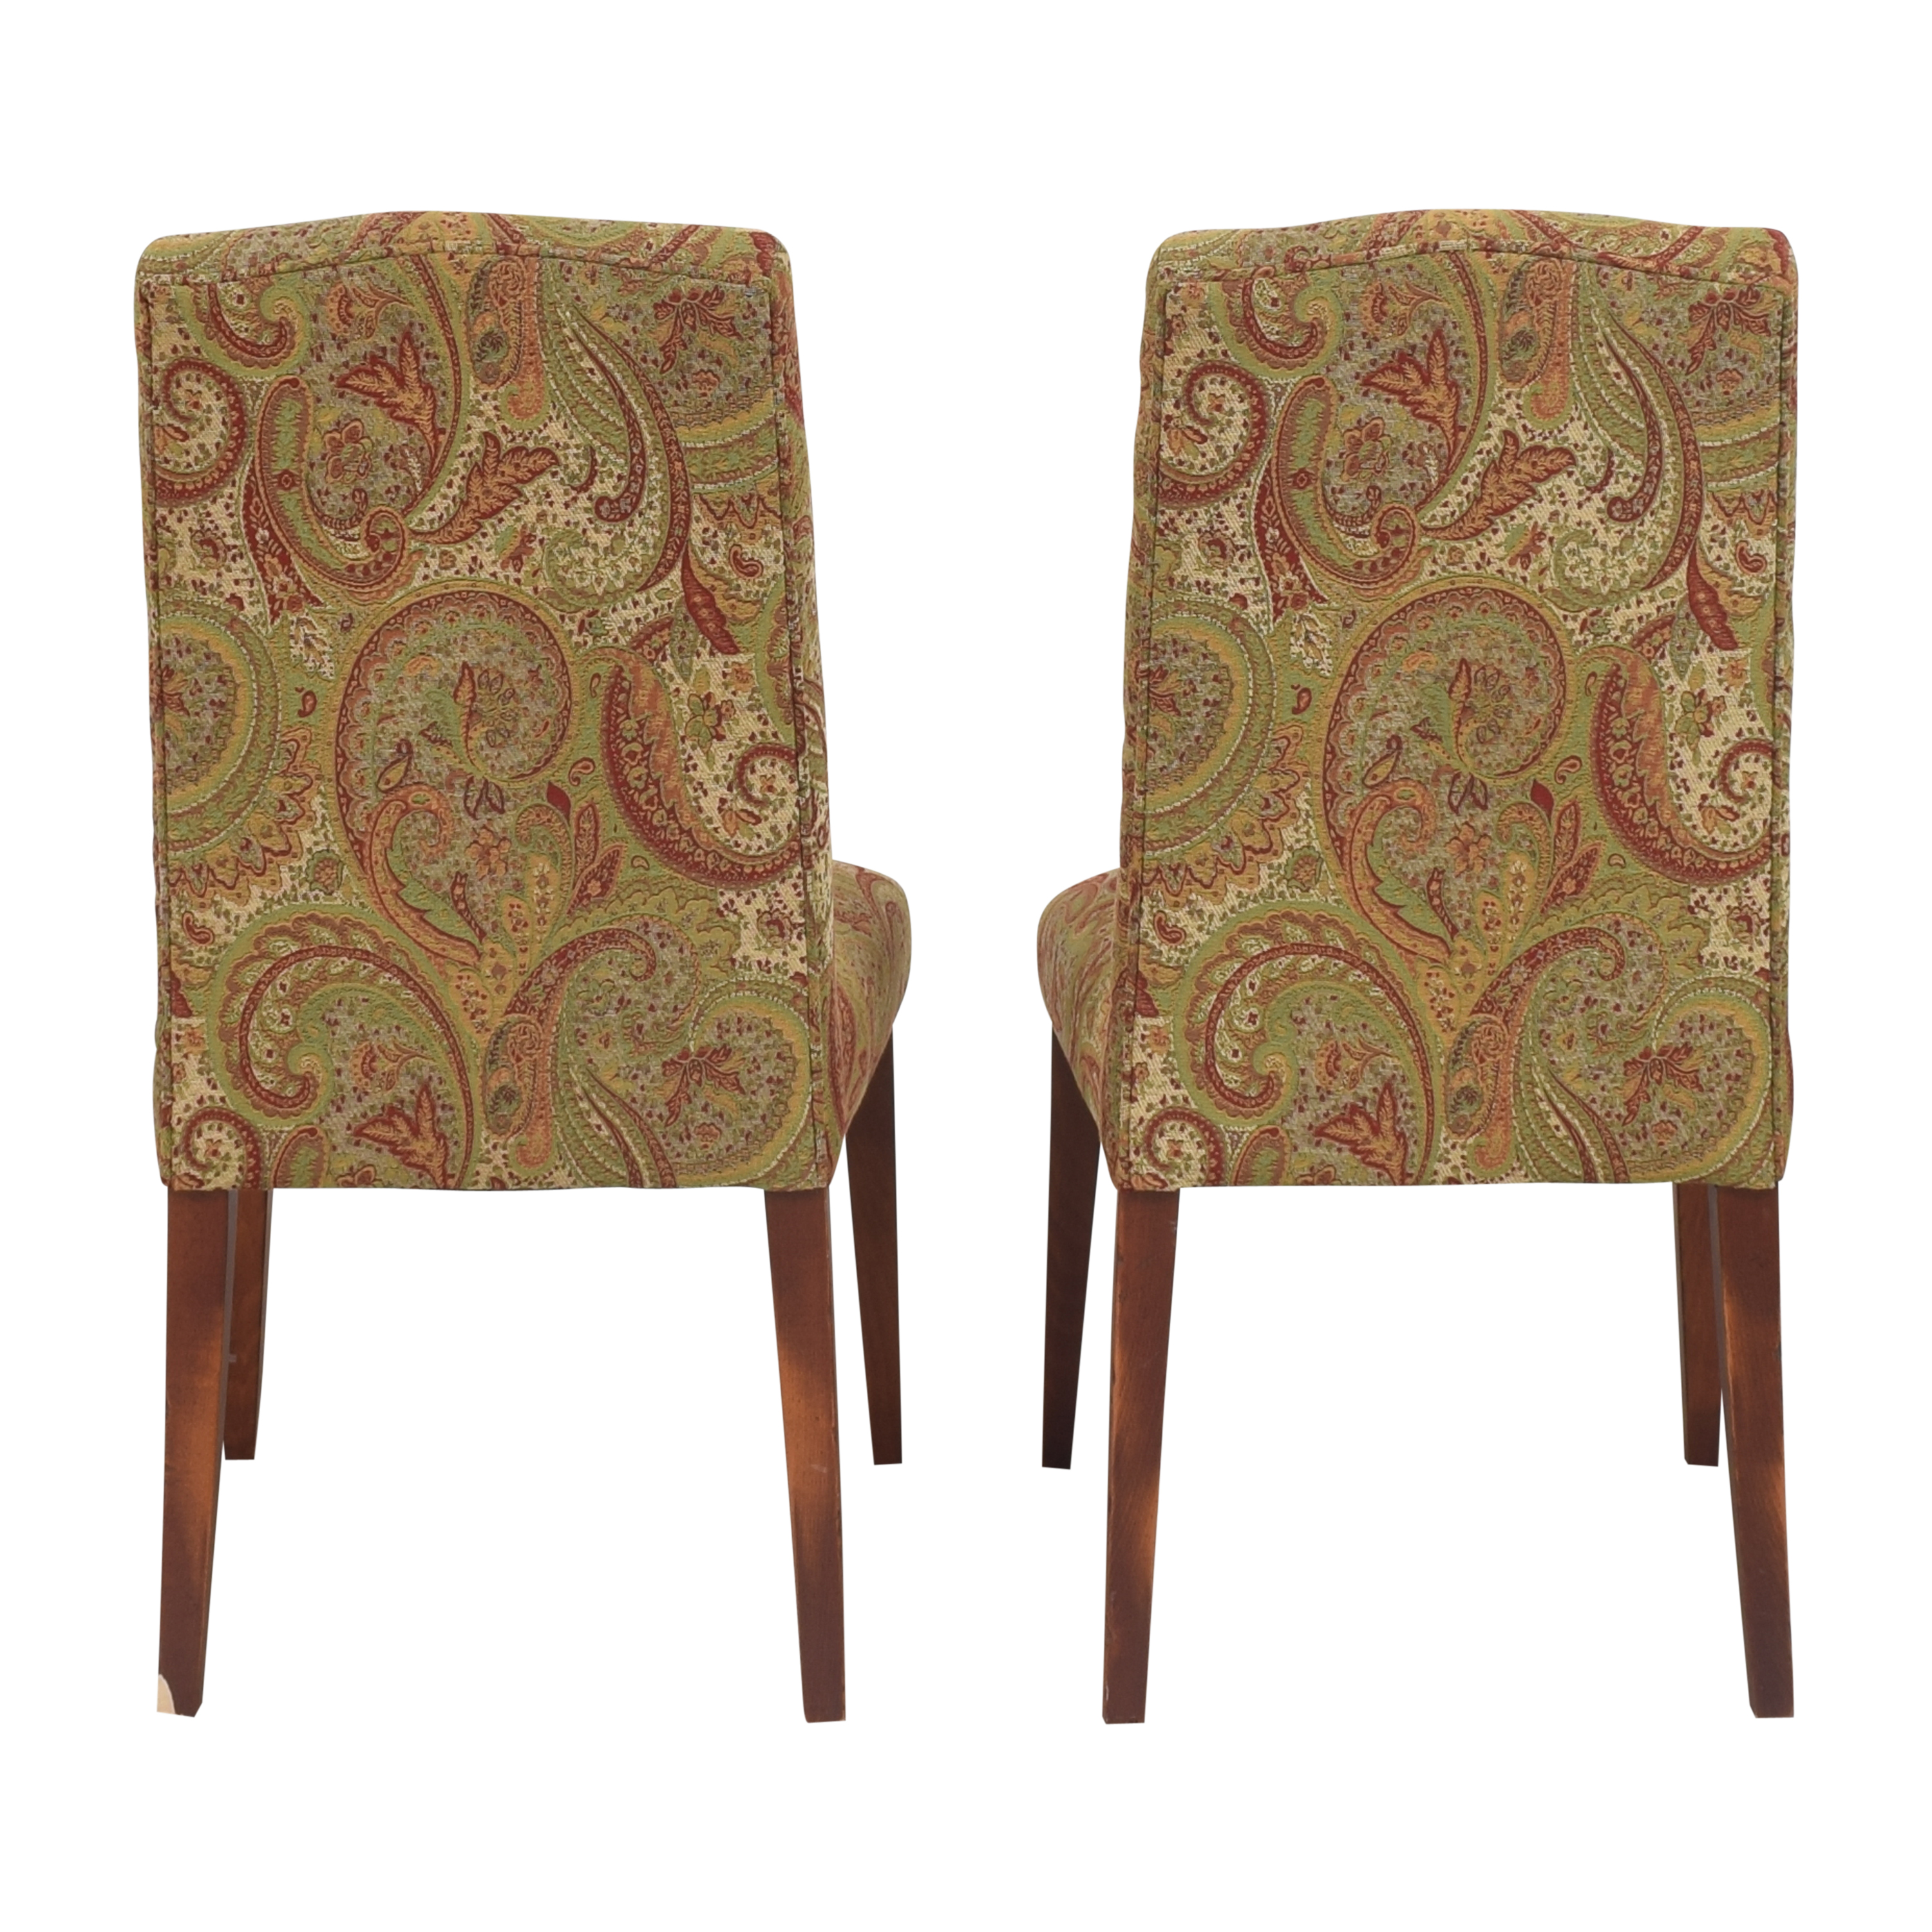 Saloom Saloom Model 61 Upholstered Dining Side Chairs Dining Chairs